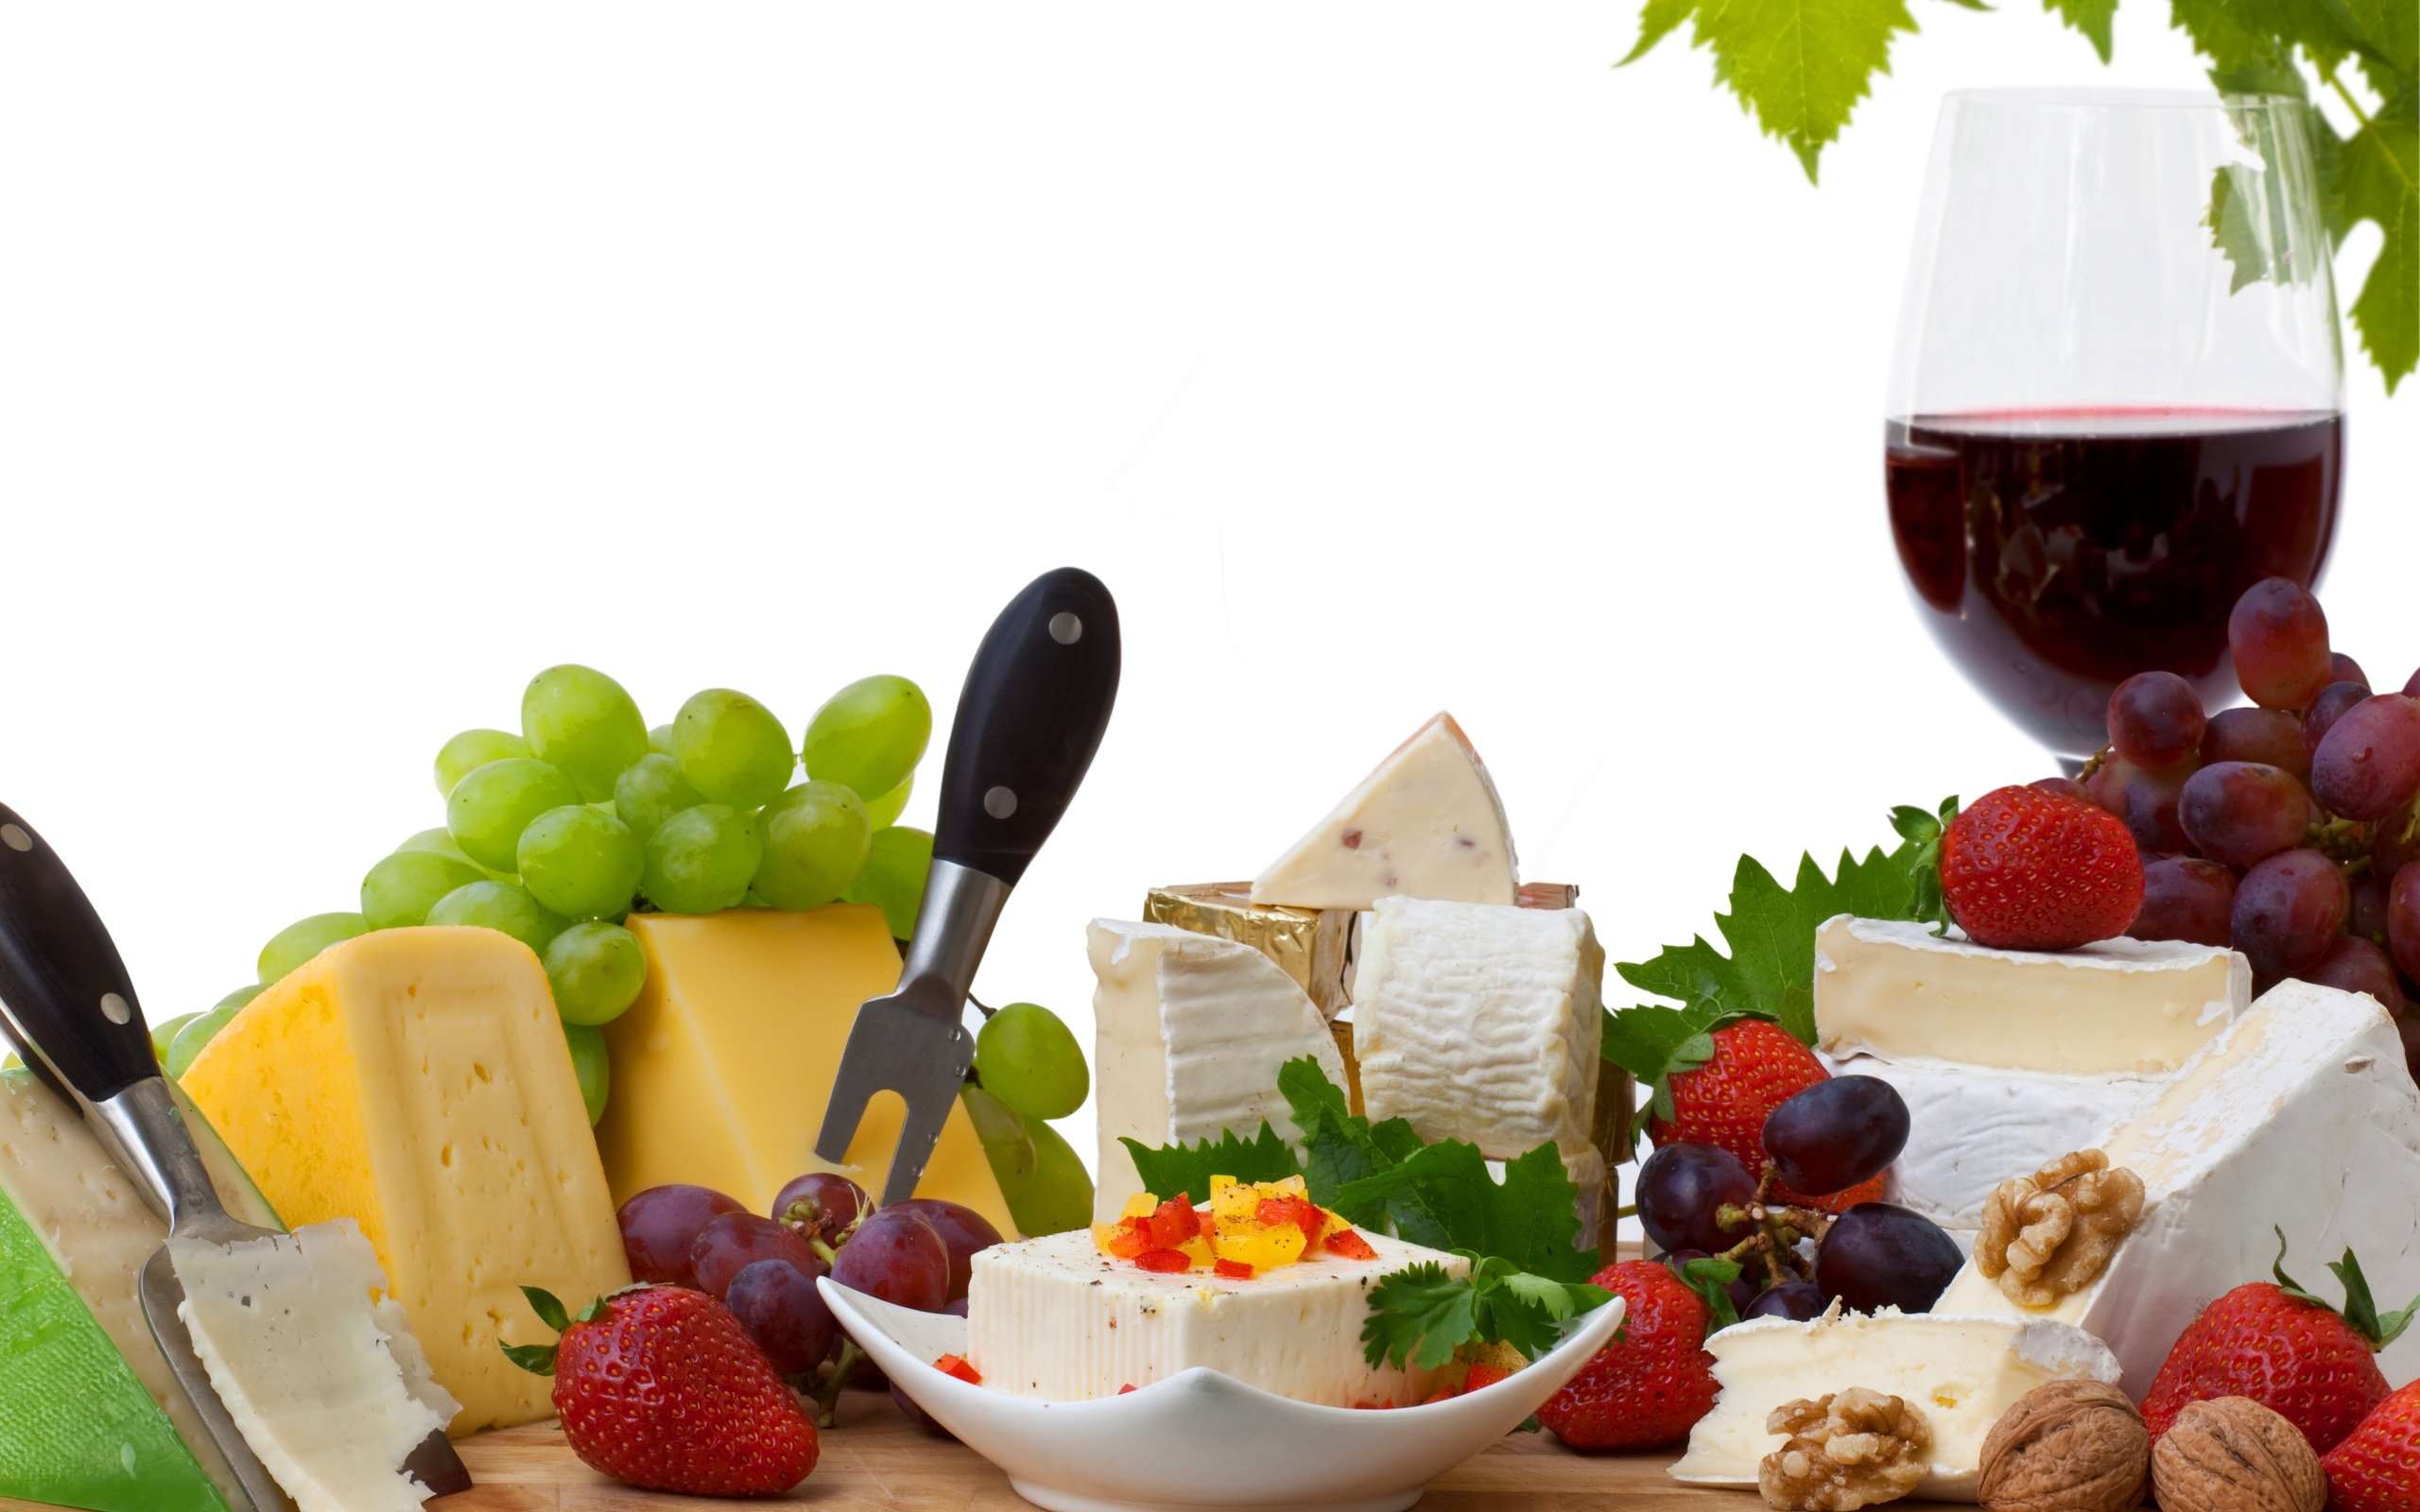 wine_grapes_red_cheese_strawberries_glass_80882_2560x1600